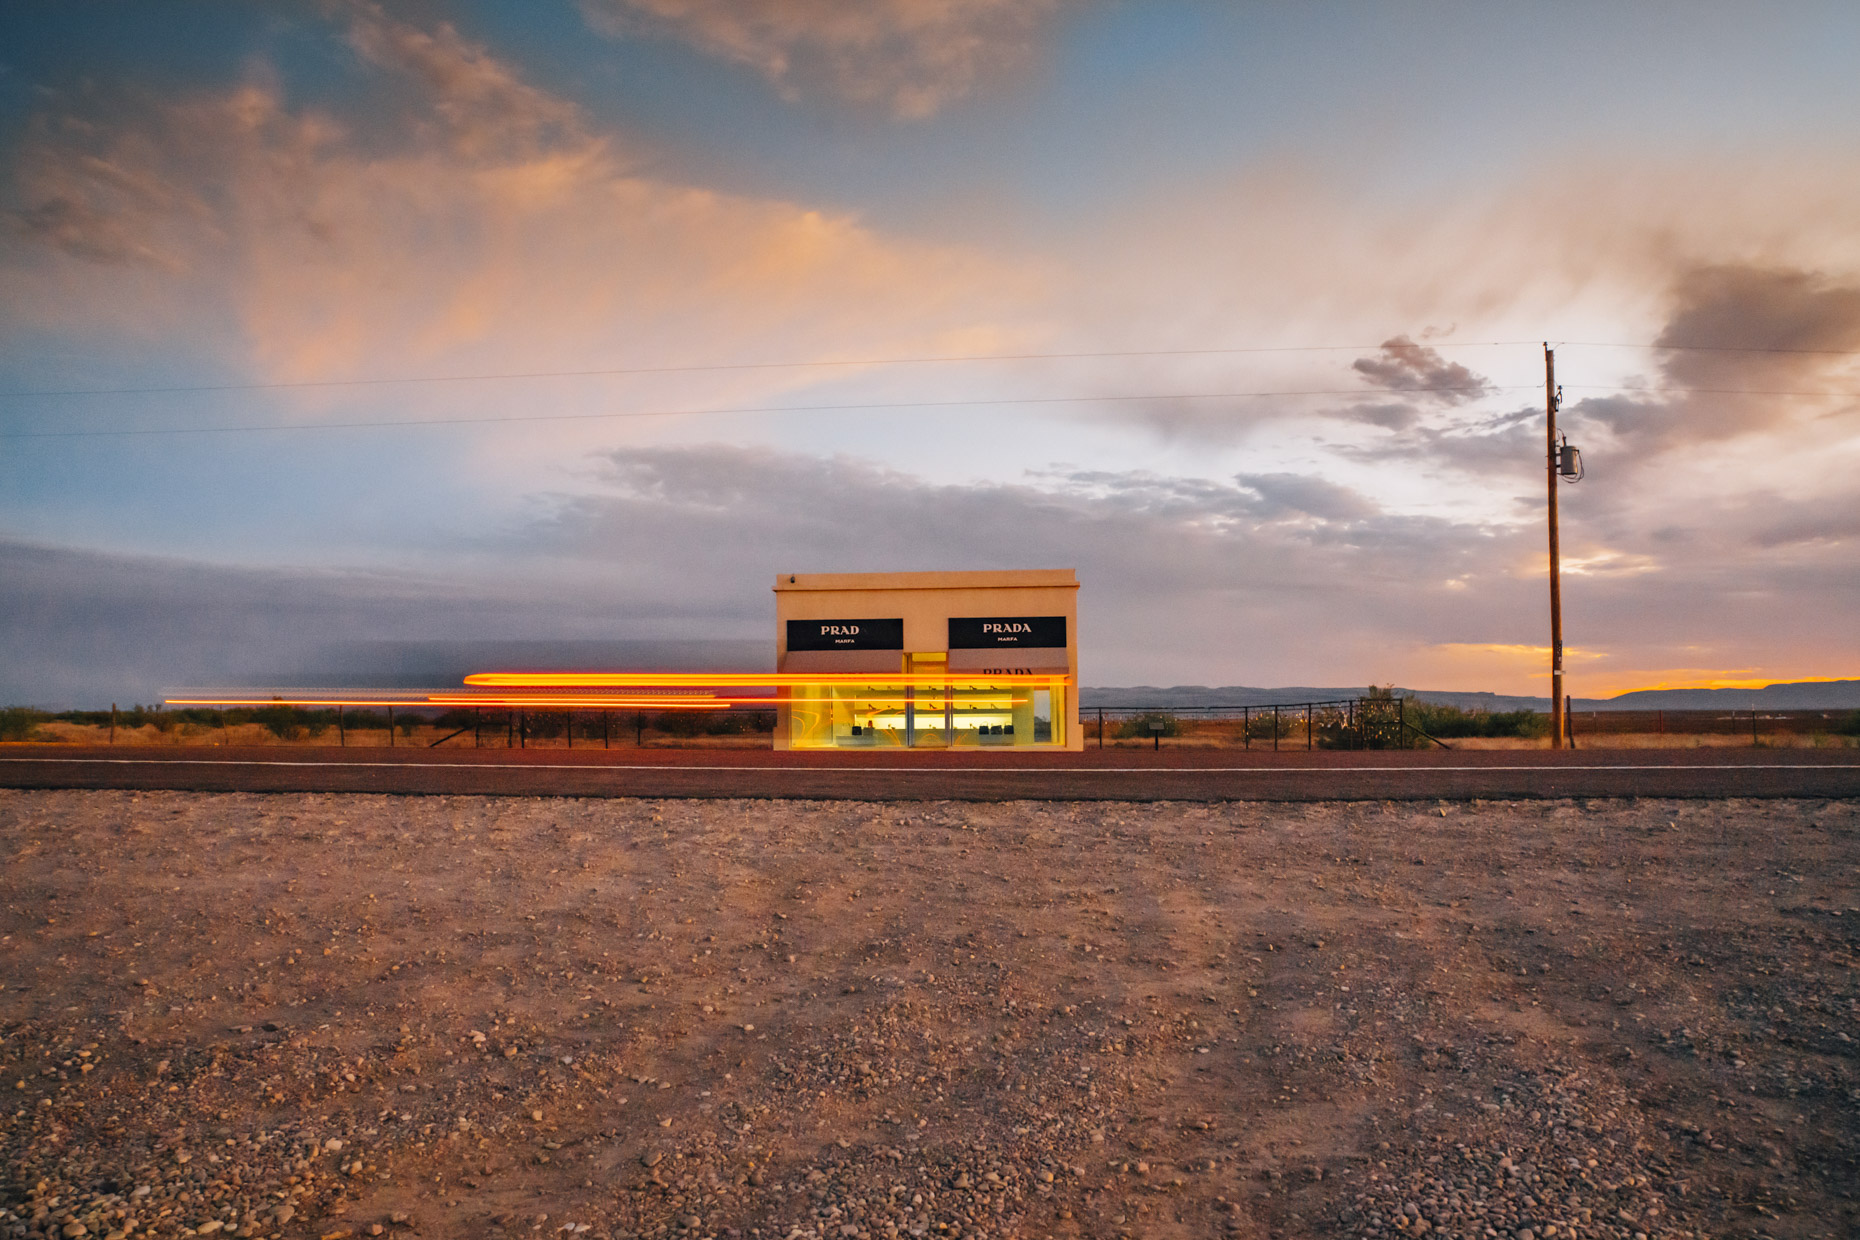 Prada store in Marfa, Texas at sunset with streak of car lights